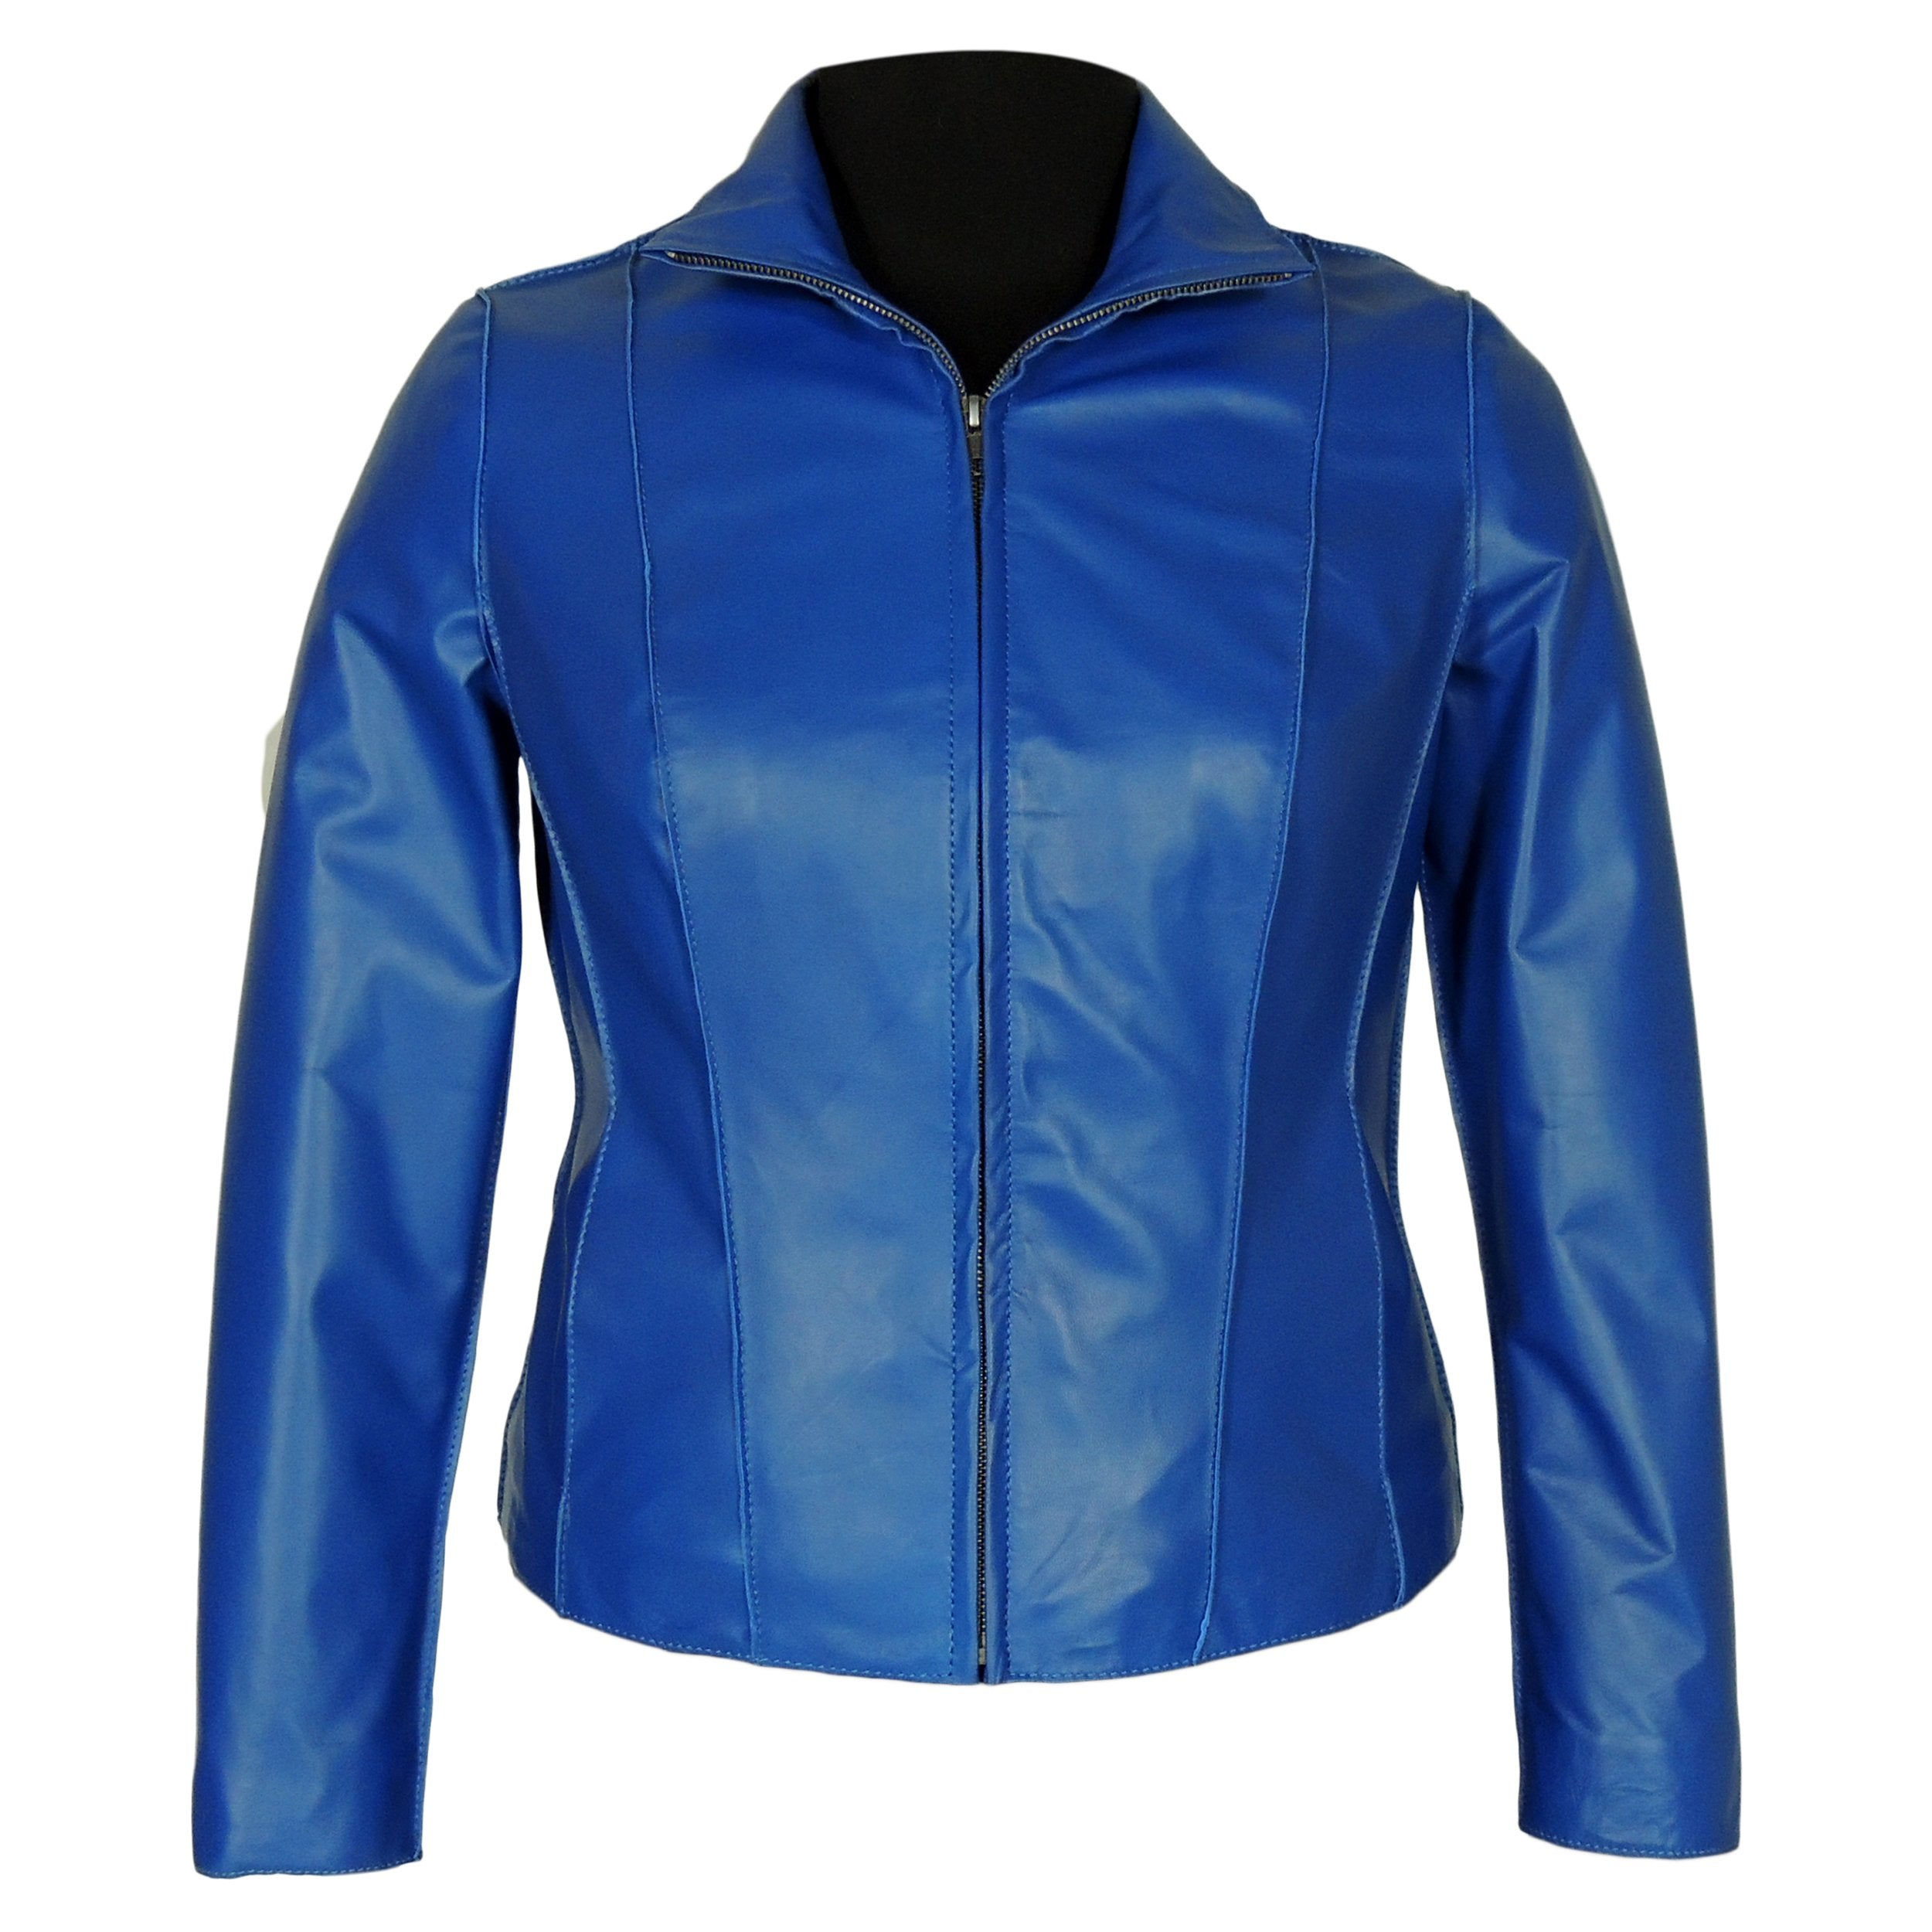 Aaliya Womens Sheepskin Leather Jacket, Blue - Fadcloset